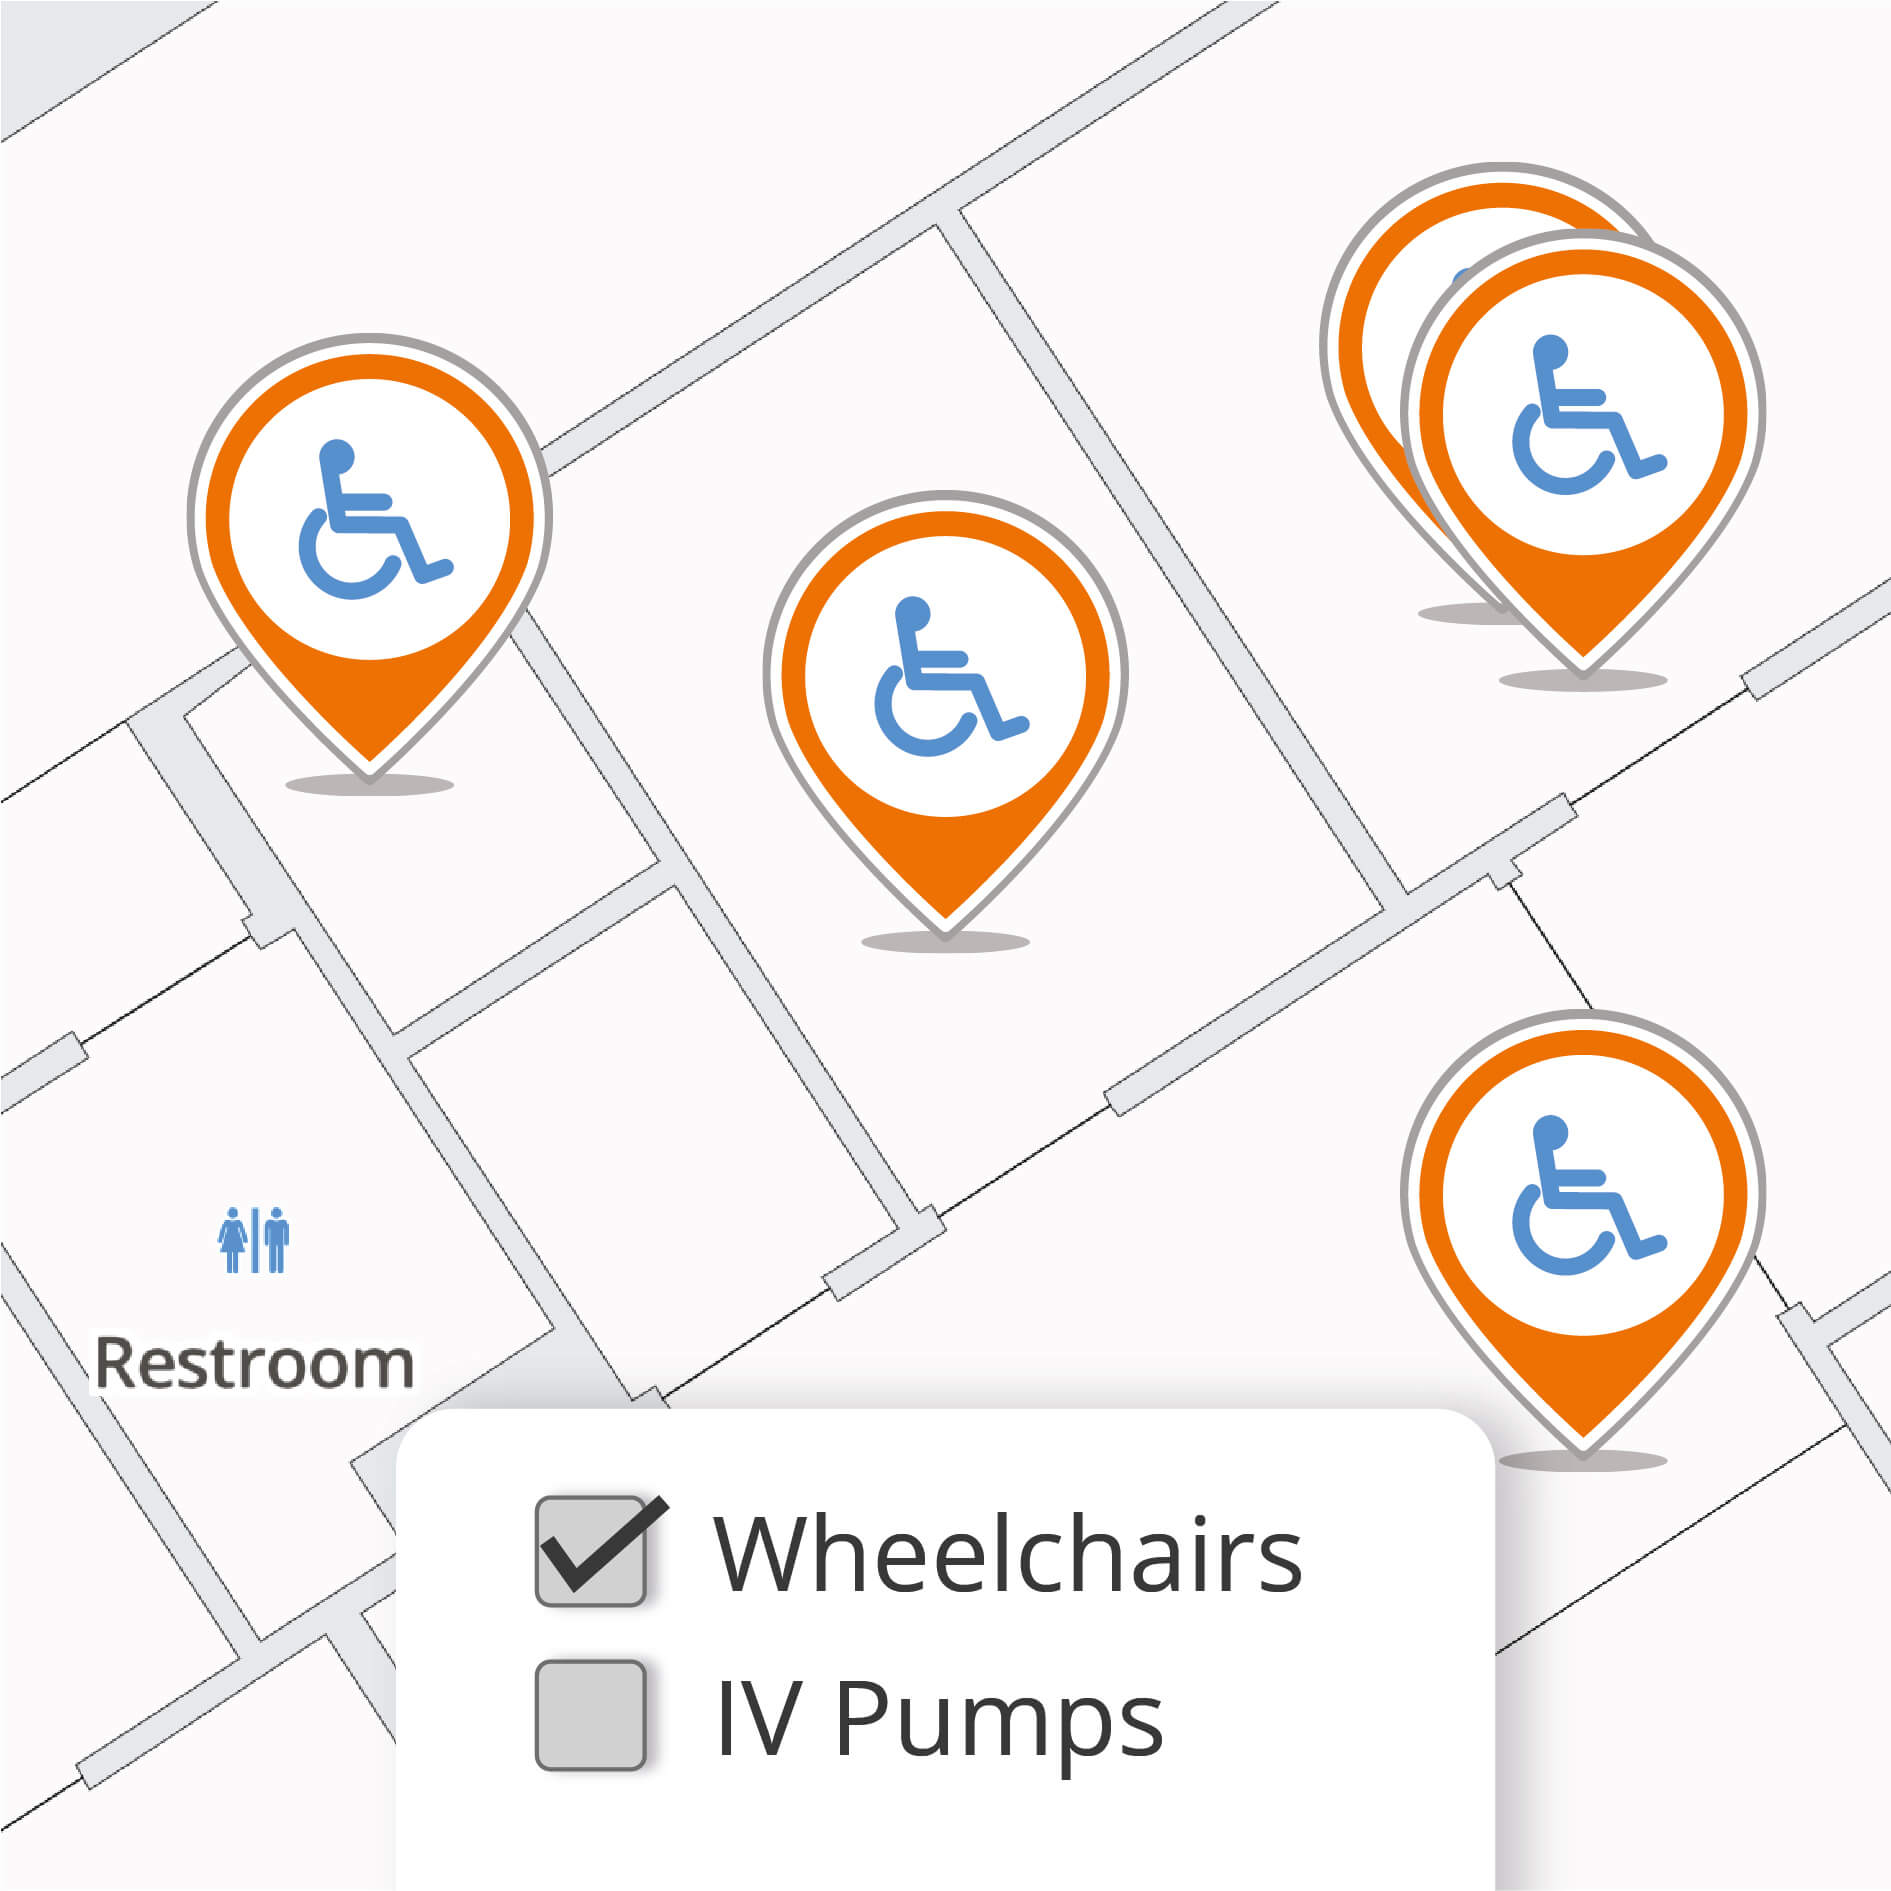 Important assets like wheelchairs highlighted on the map